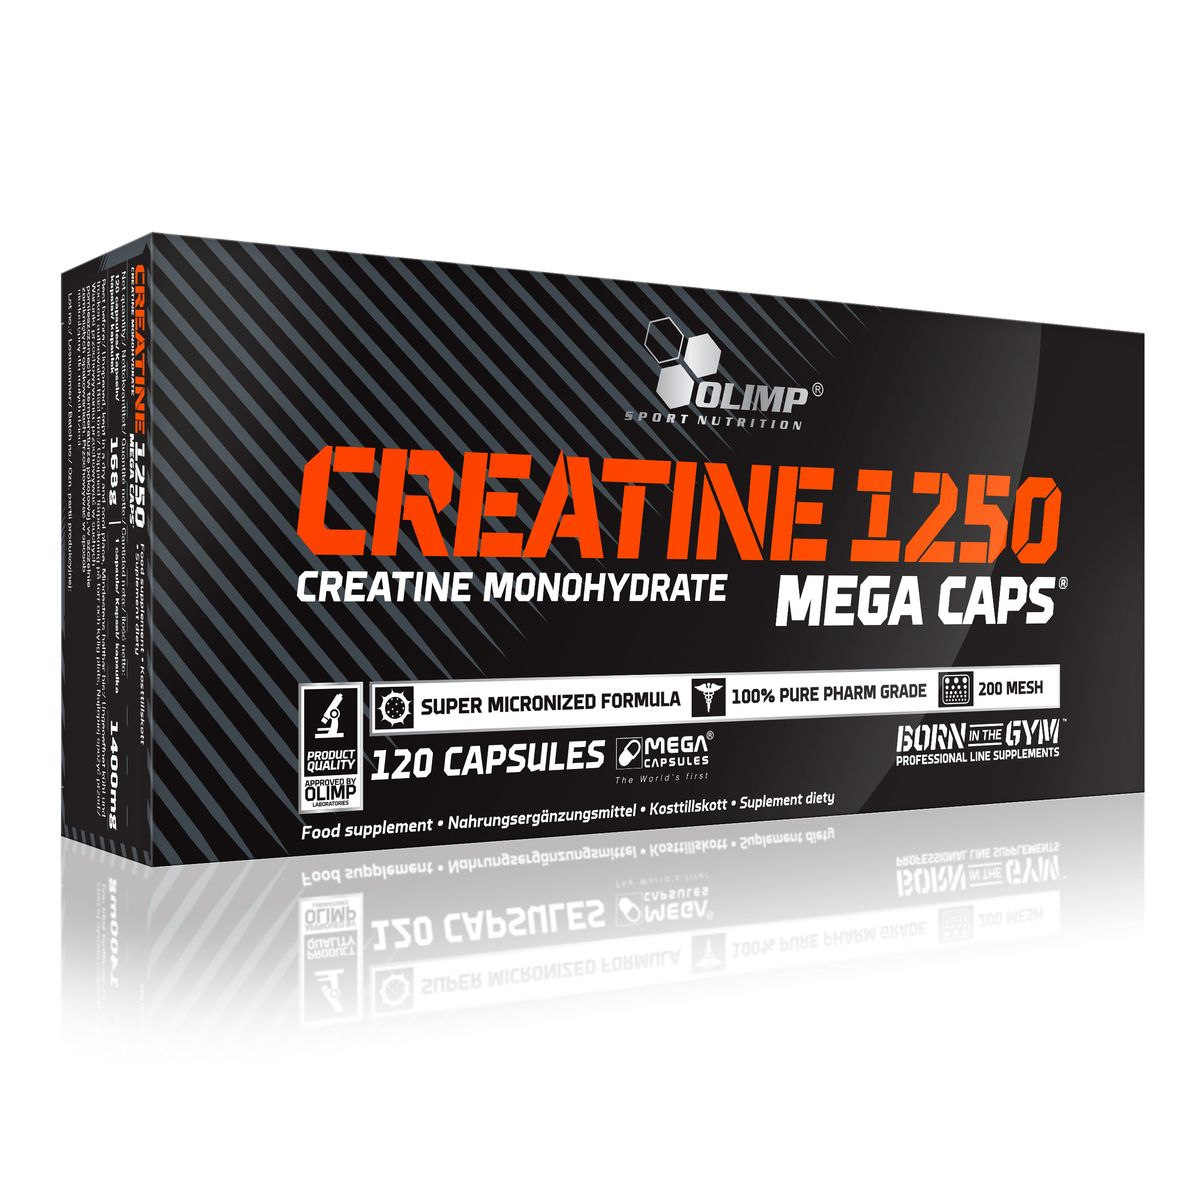 Креатин Olimp Sport Nutrition Mega Caps, 120 капсул креатин olimp creatine xplode ананас 500 г